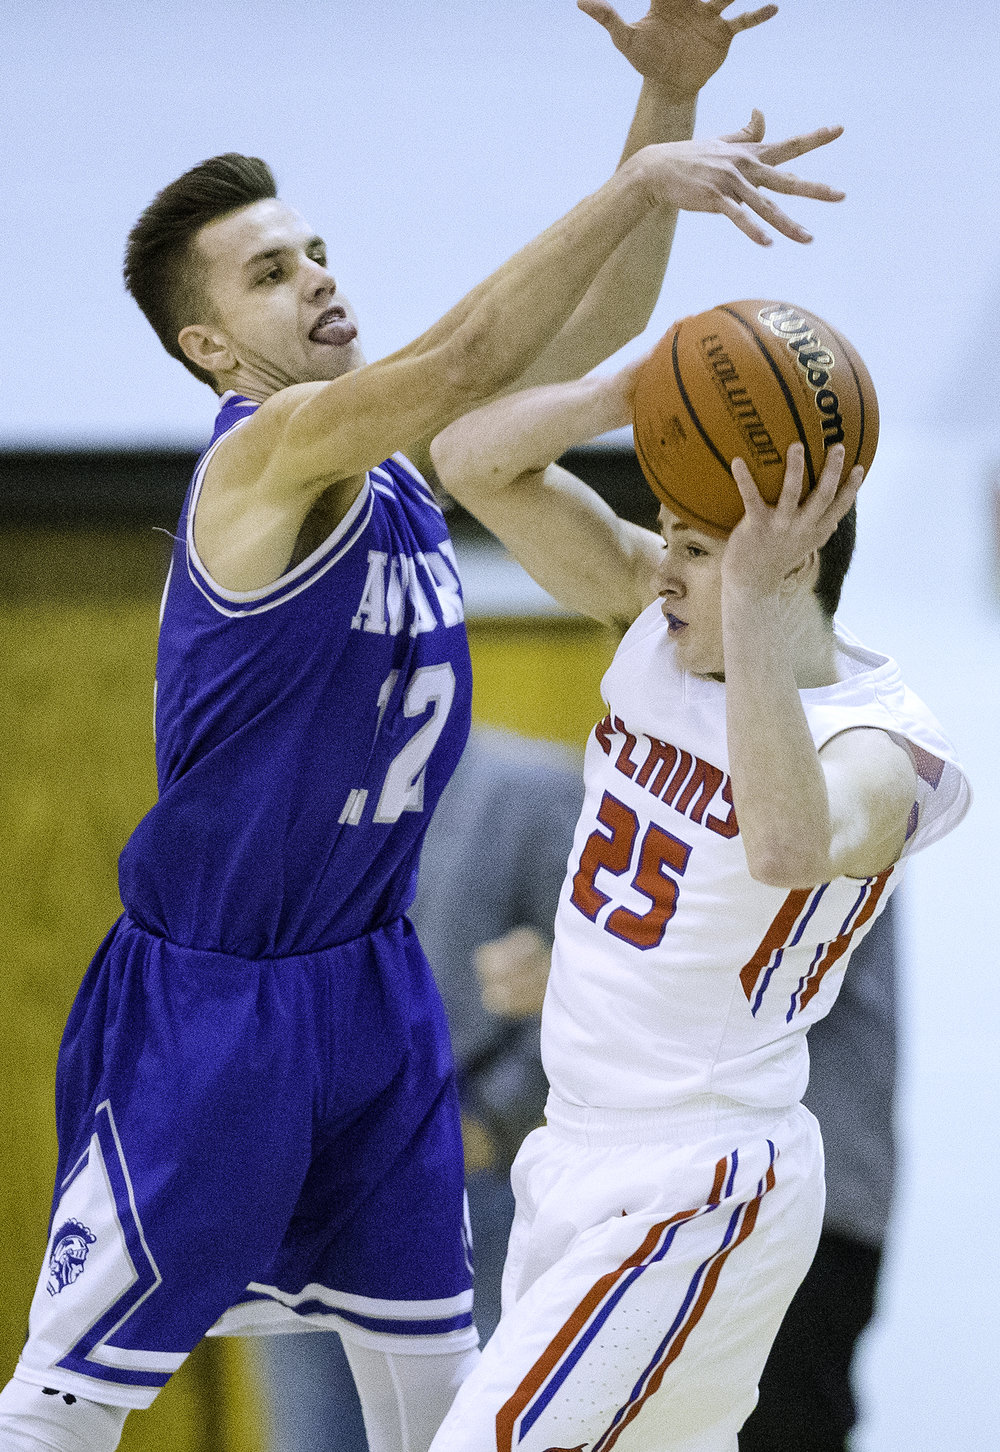 Auburn's Colby Bossmann pressures Pleasant Plains' Corgan Greer during the Class 2A Auburn Regional at Auburn High School Wednesday,  Feb. 21, 2018. [Ted Schurter/The State Journal-Register]